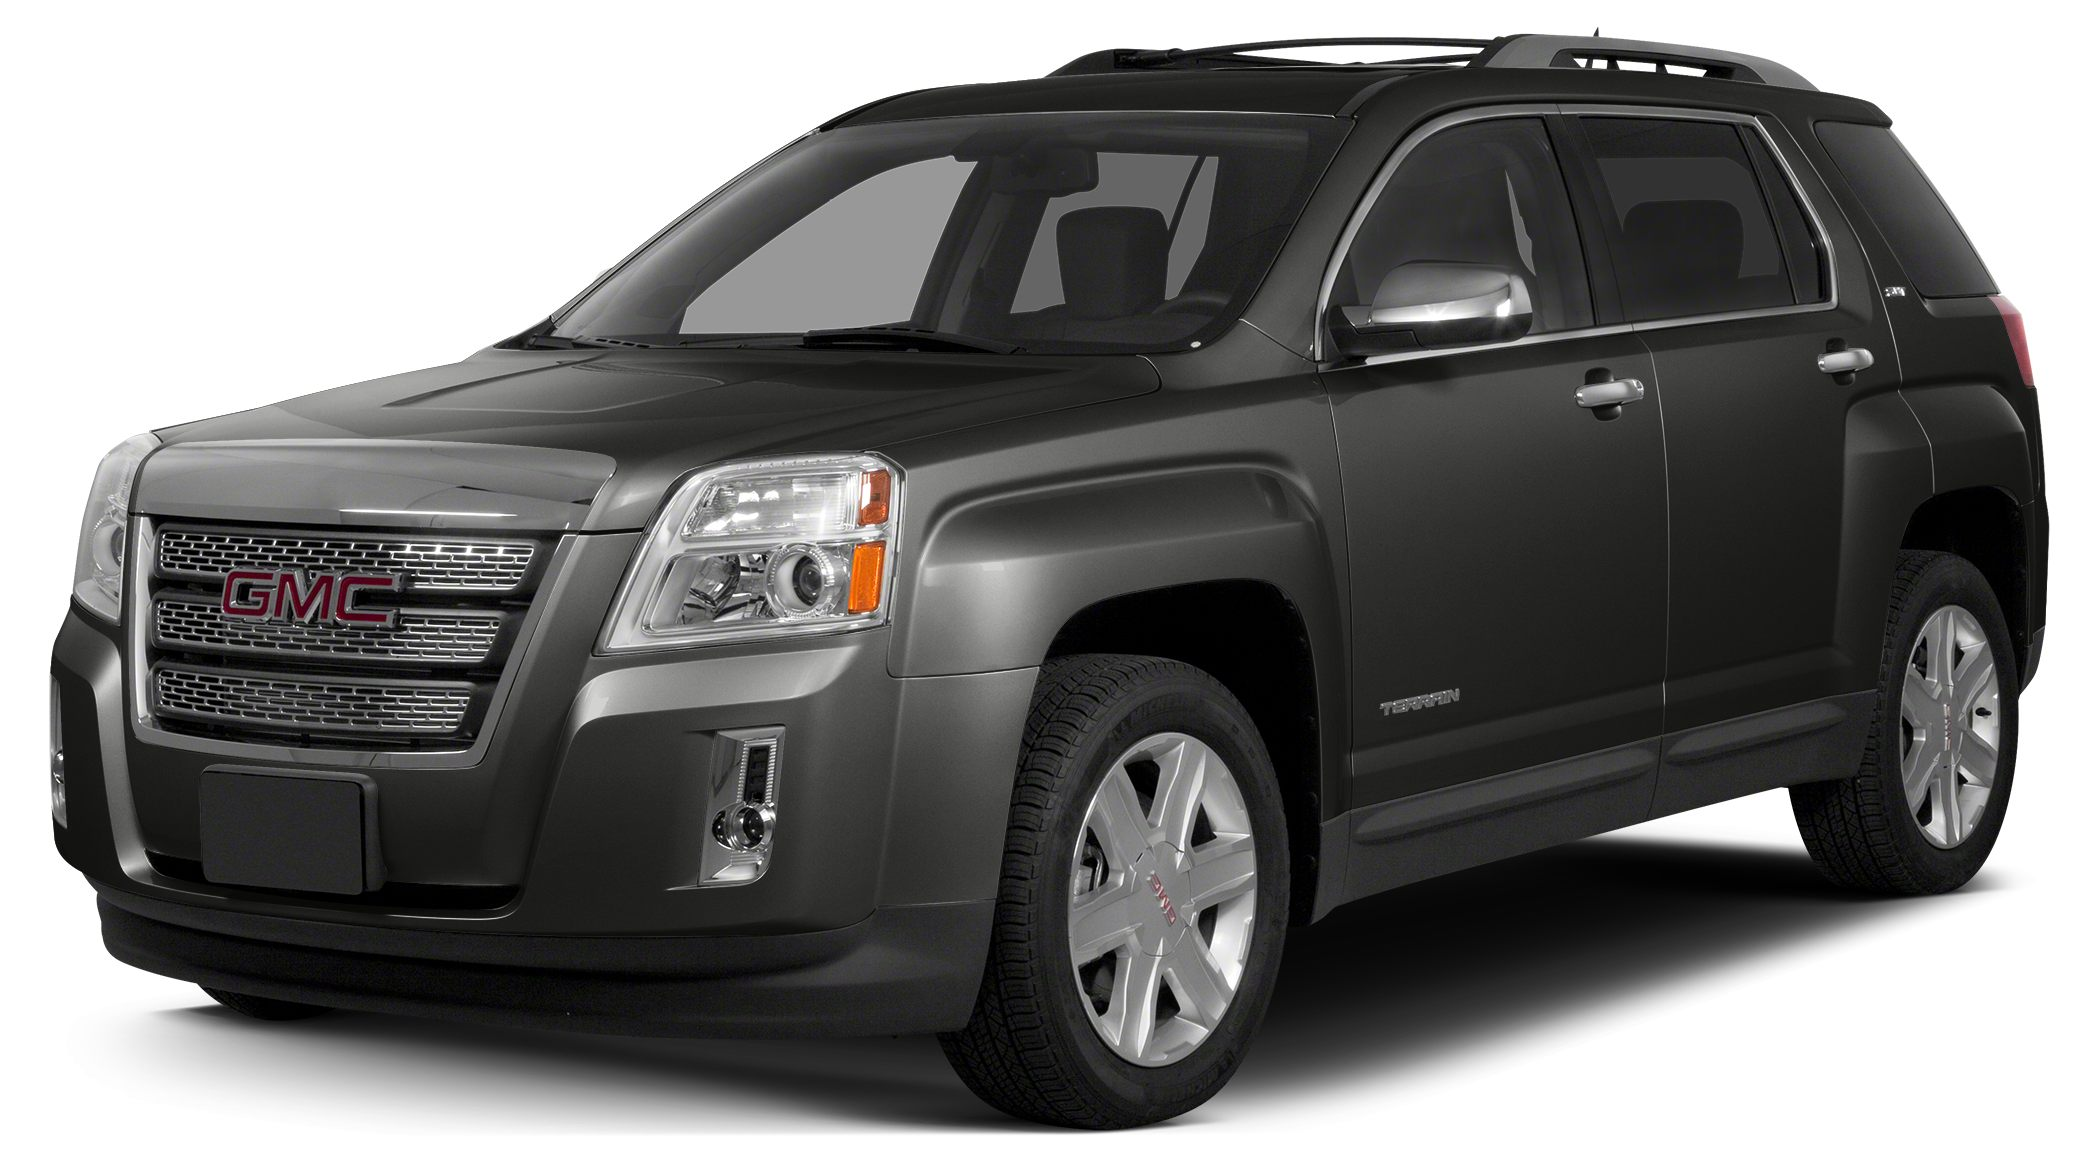 2015 GMC Terrain SLT-1 It doesnt get much better than this 2015 GMC Terrain SLT which boasts a r